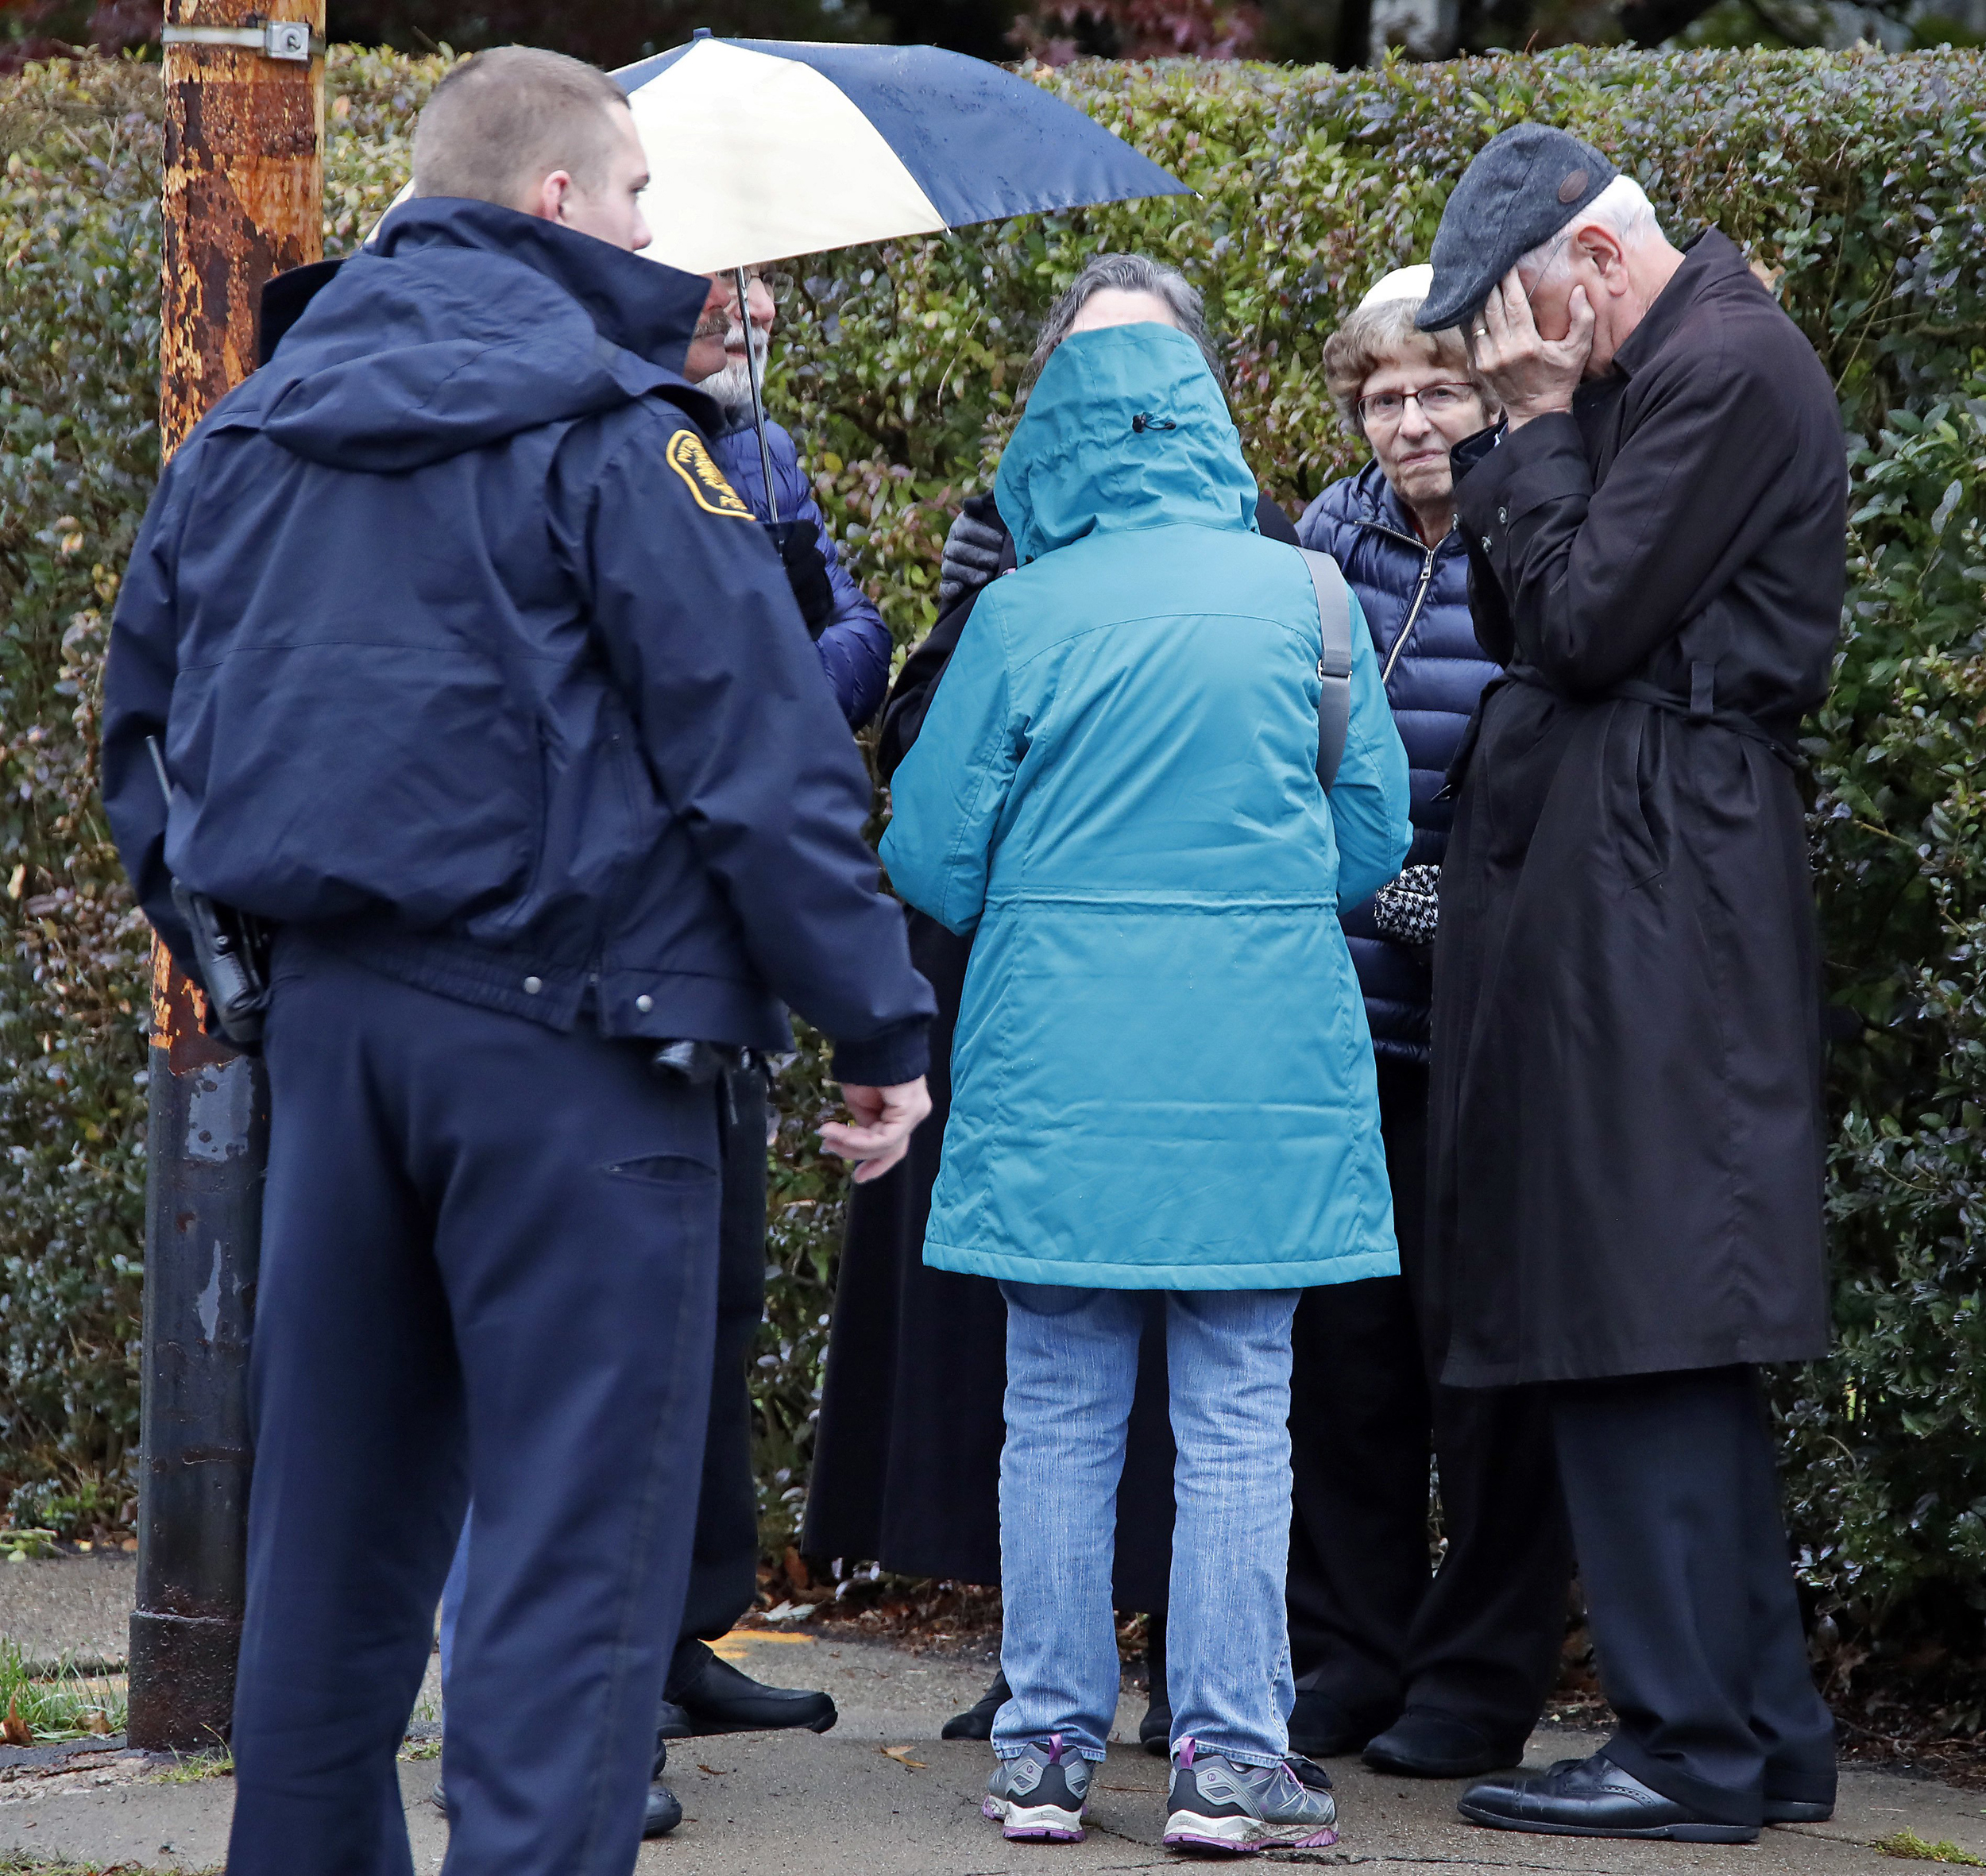 11 dead in shooting at Pittsburgh synagogue, suspect in custody